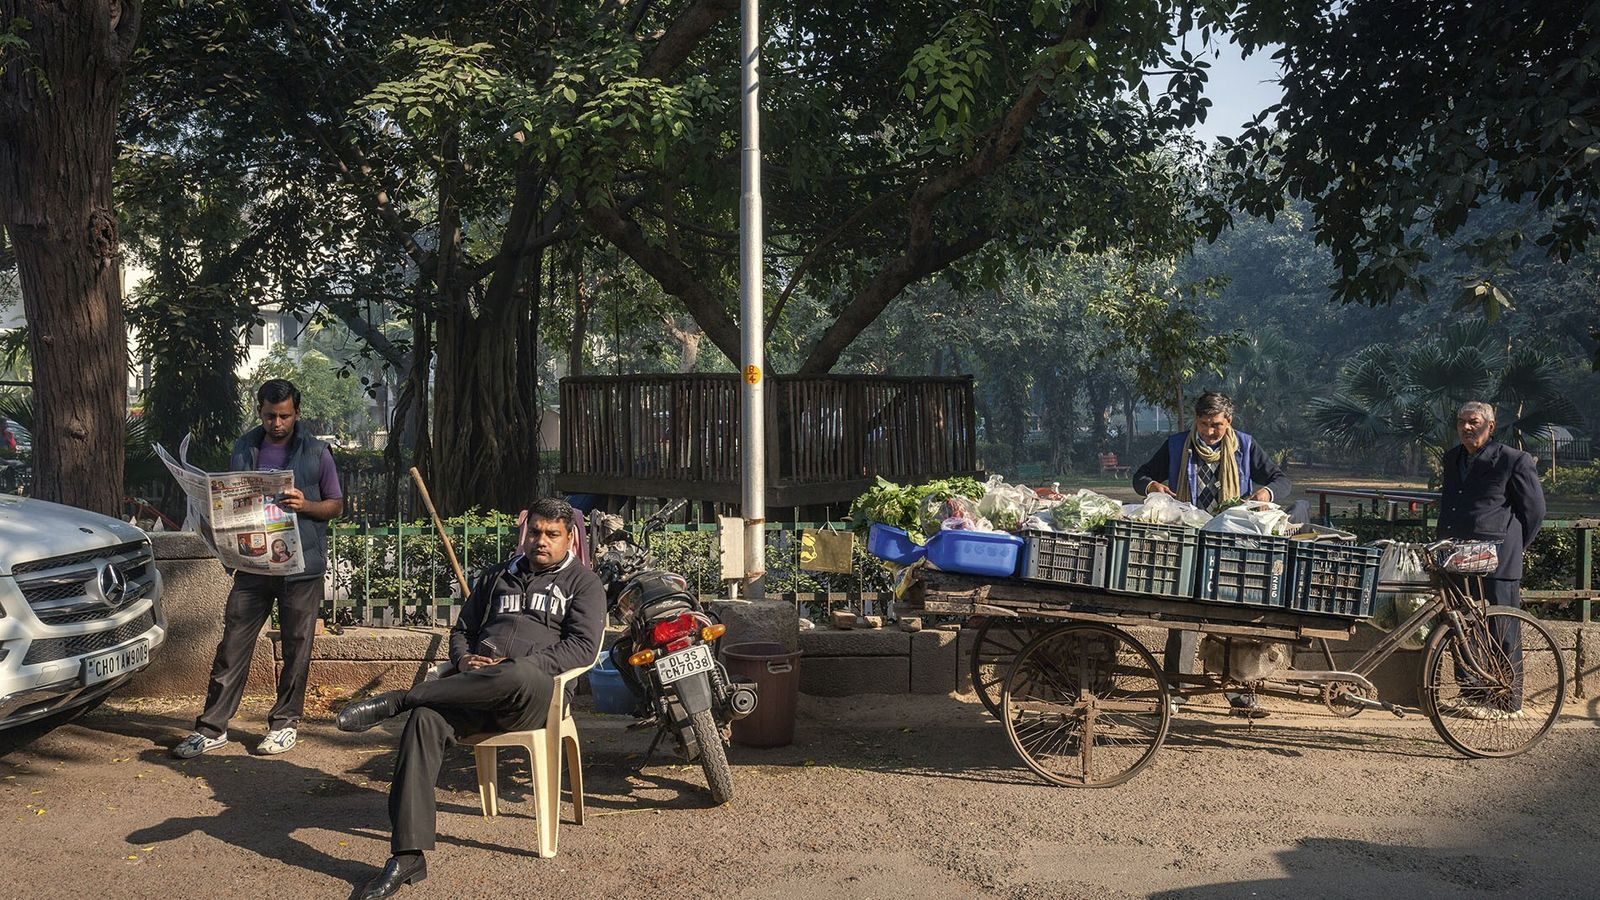 The Chandra's vegetable vendor checks his stock, while a driver reads the paper and a guard ...